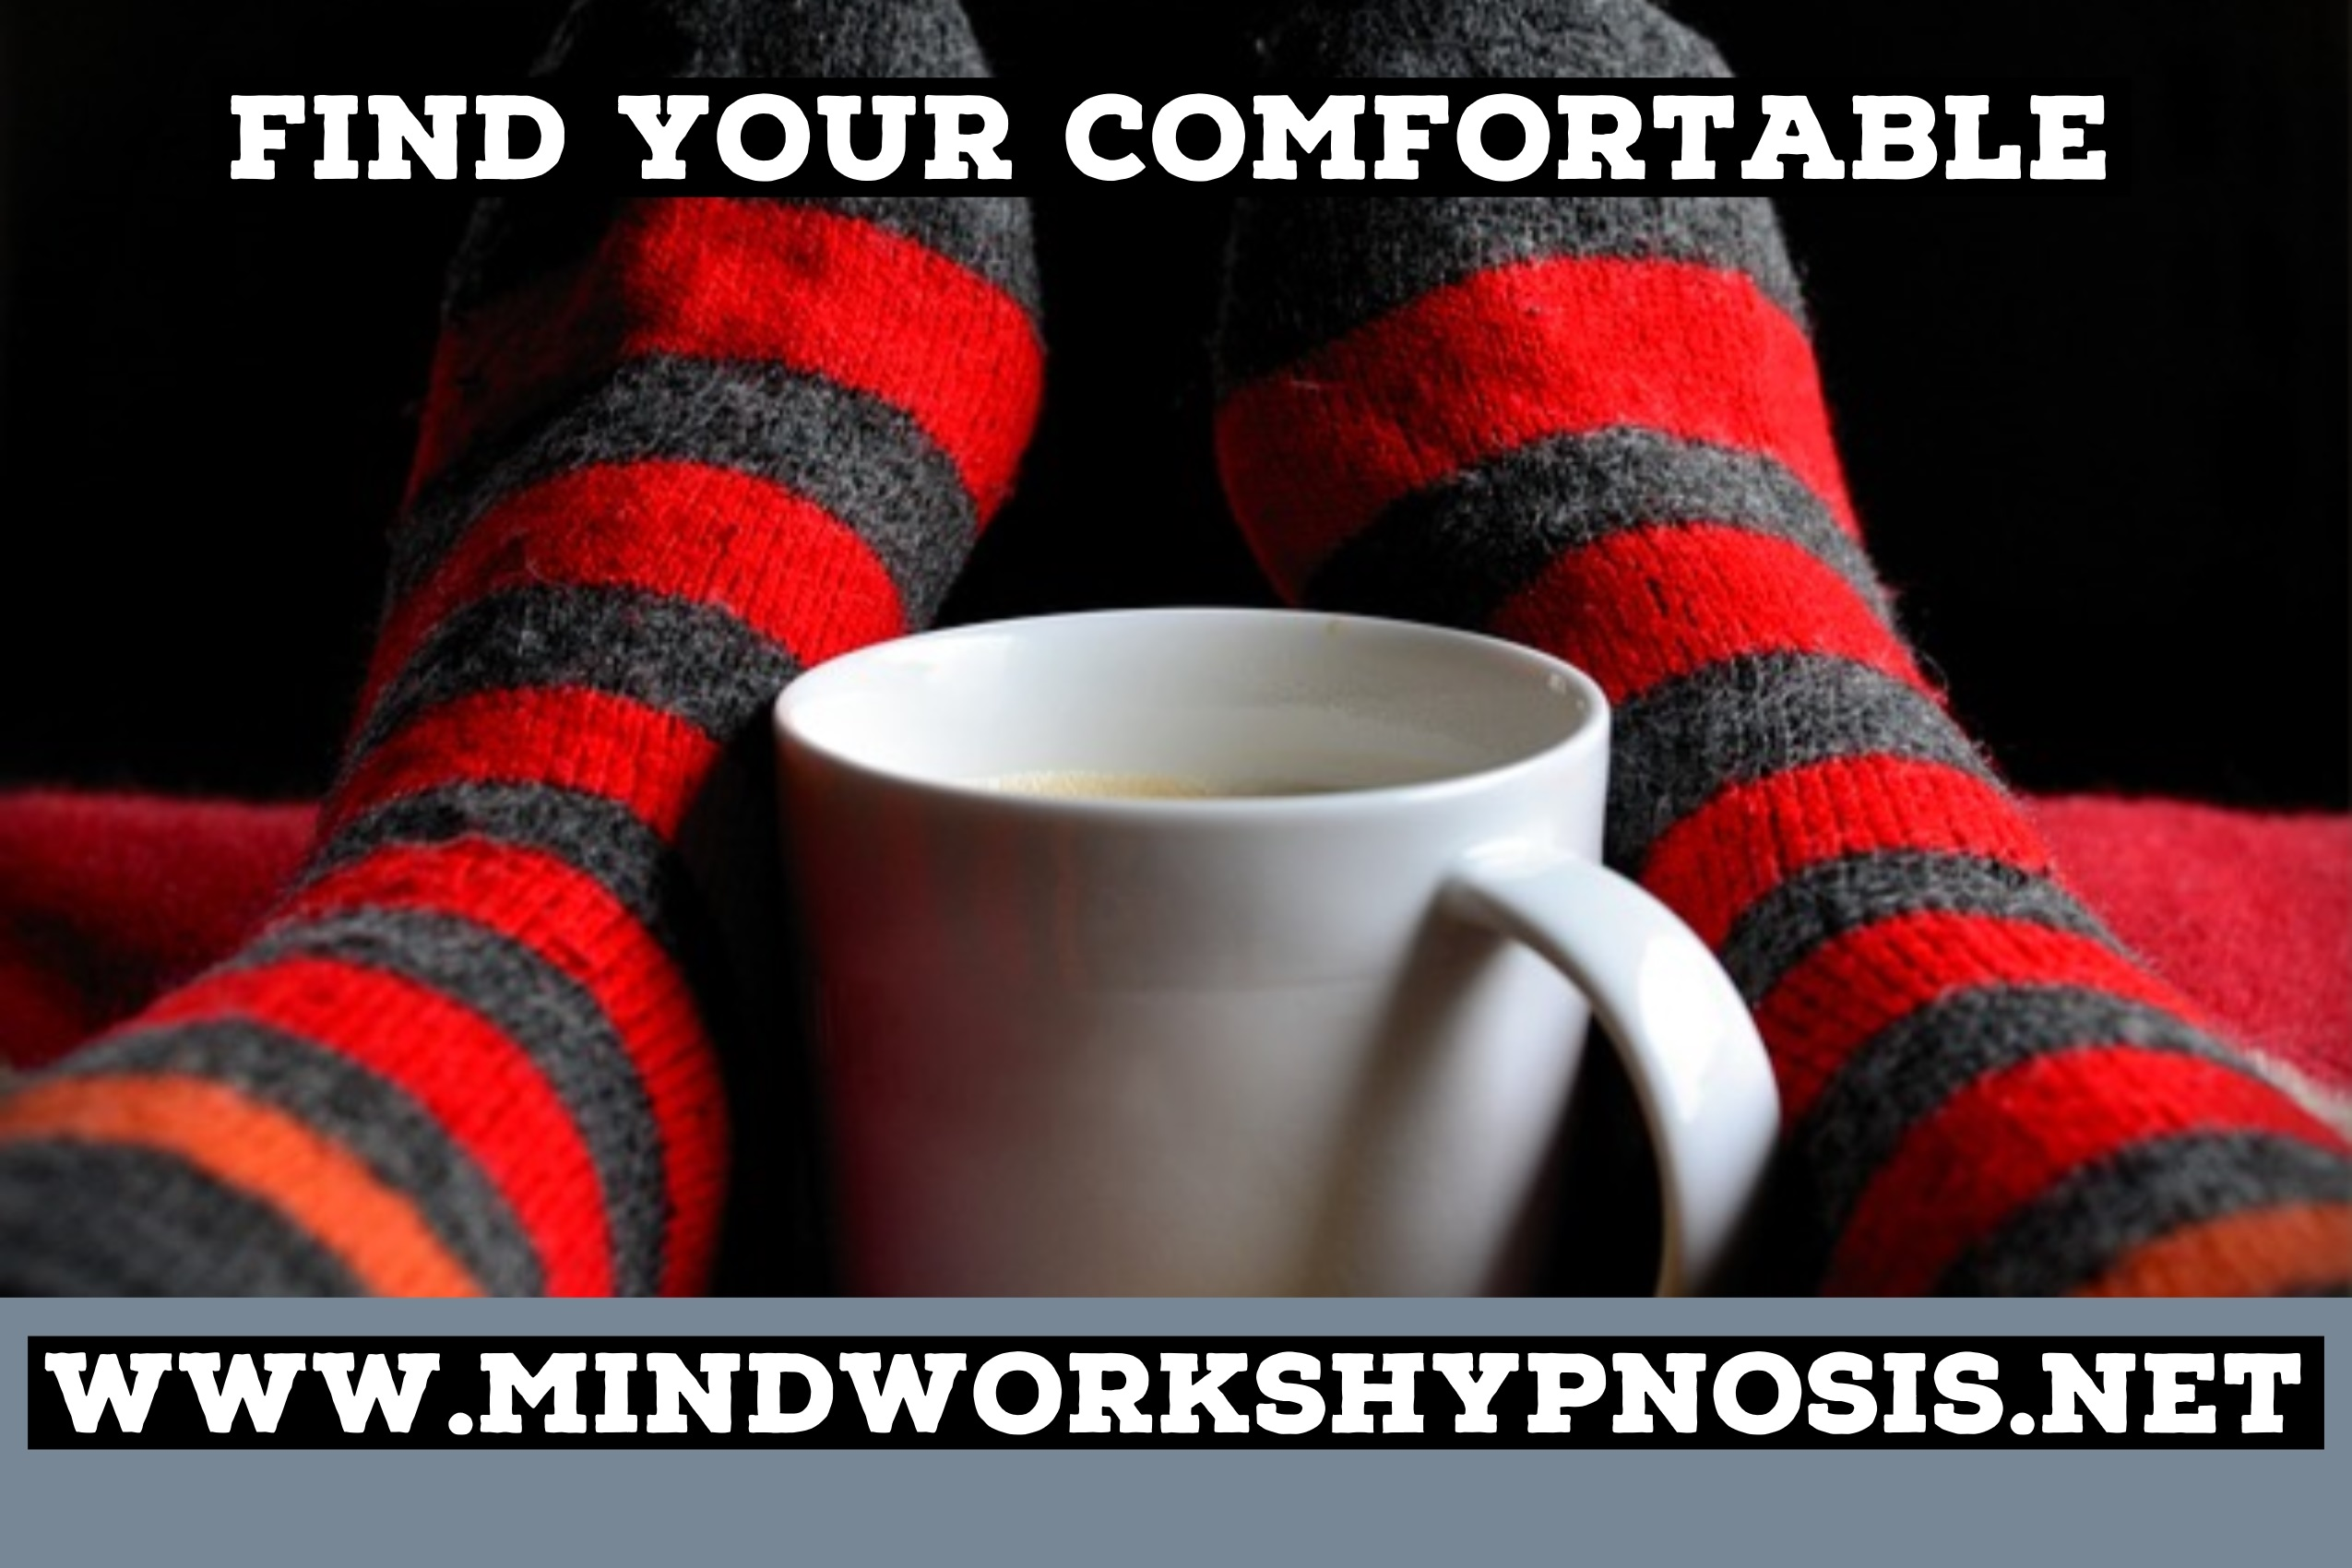 Find Your Comfortable with Best of Bellevue Mindworks Hypnosis & NLP